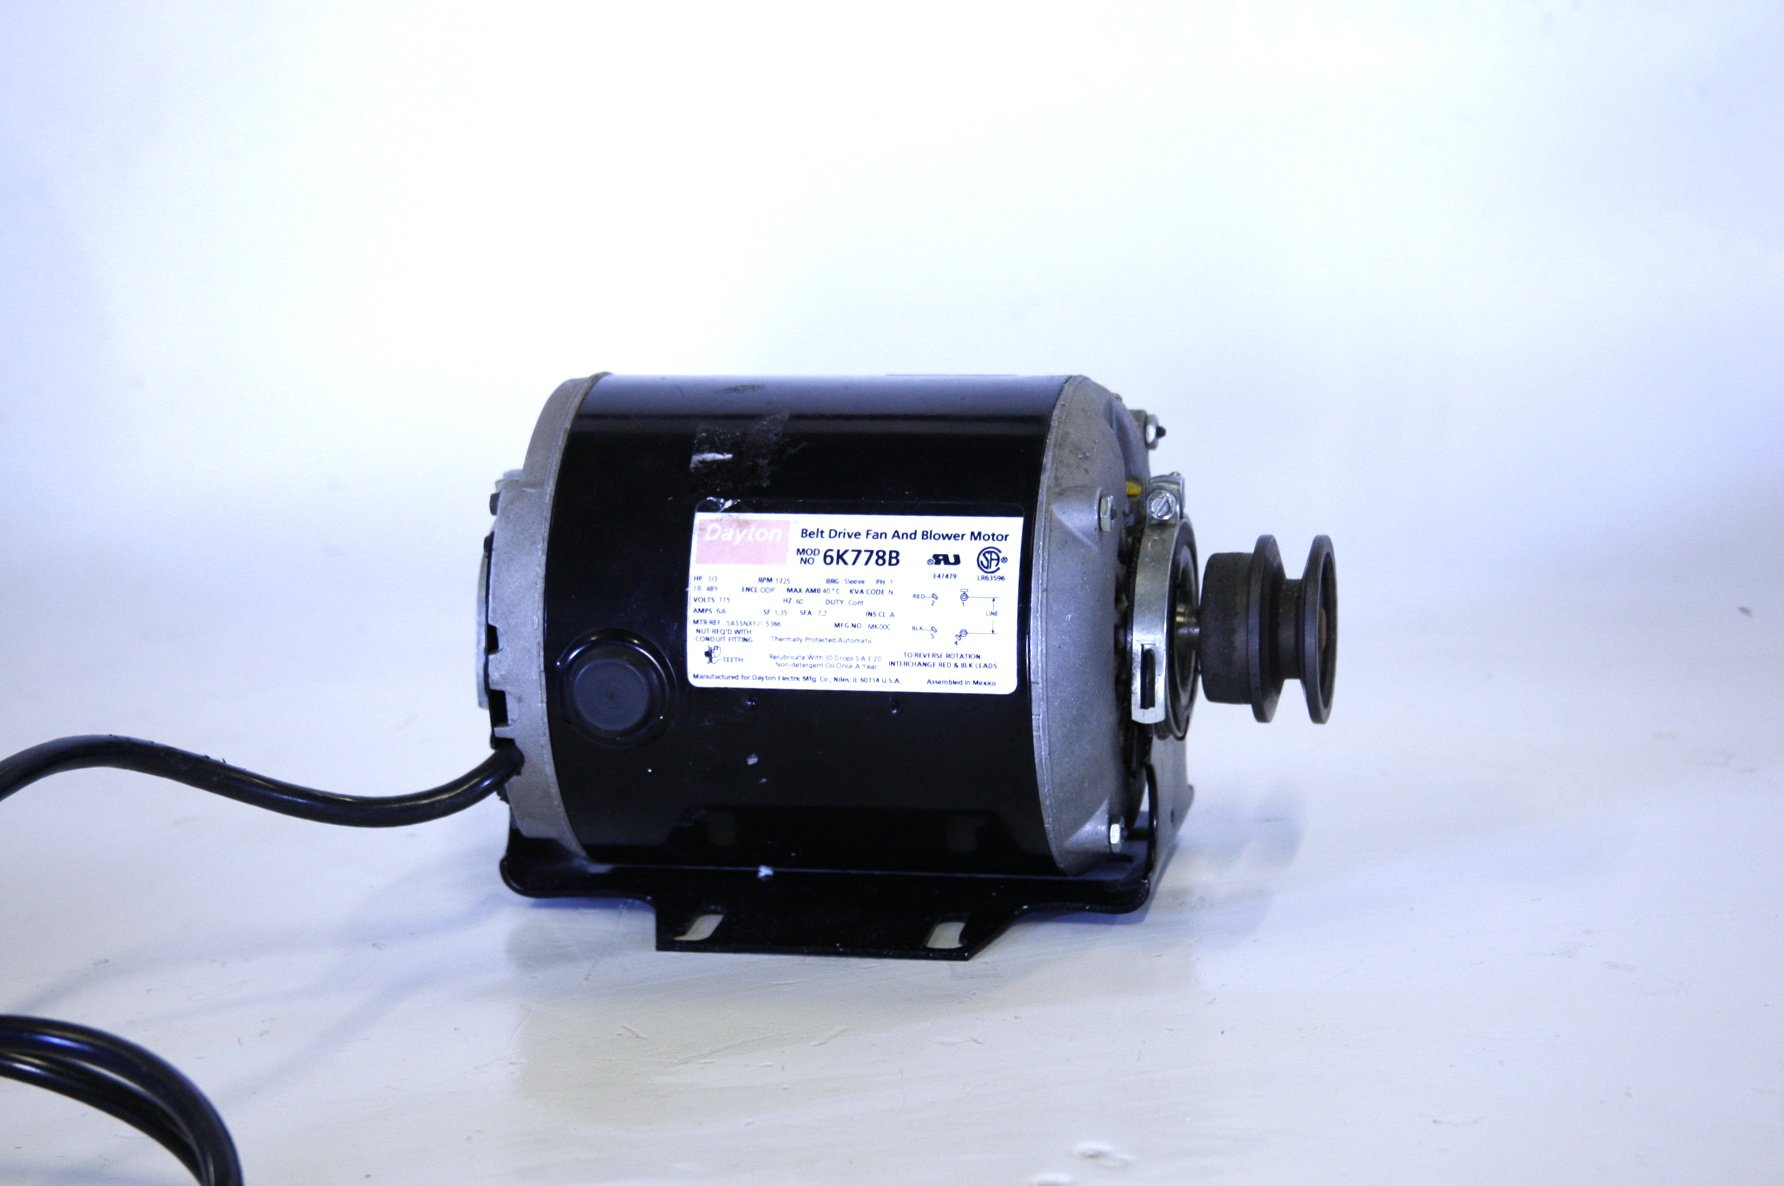 Dayton Belt Drive Fan Blower and Motor